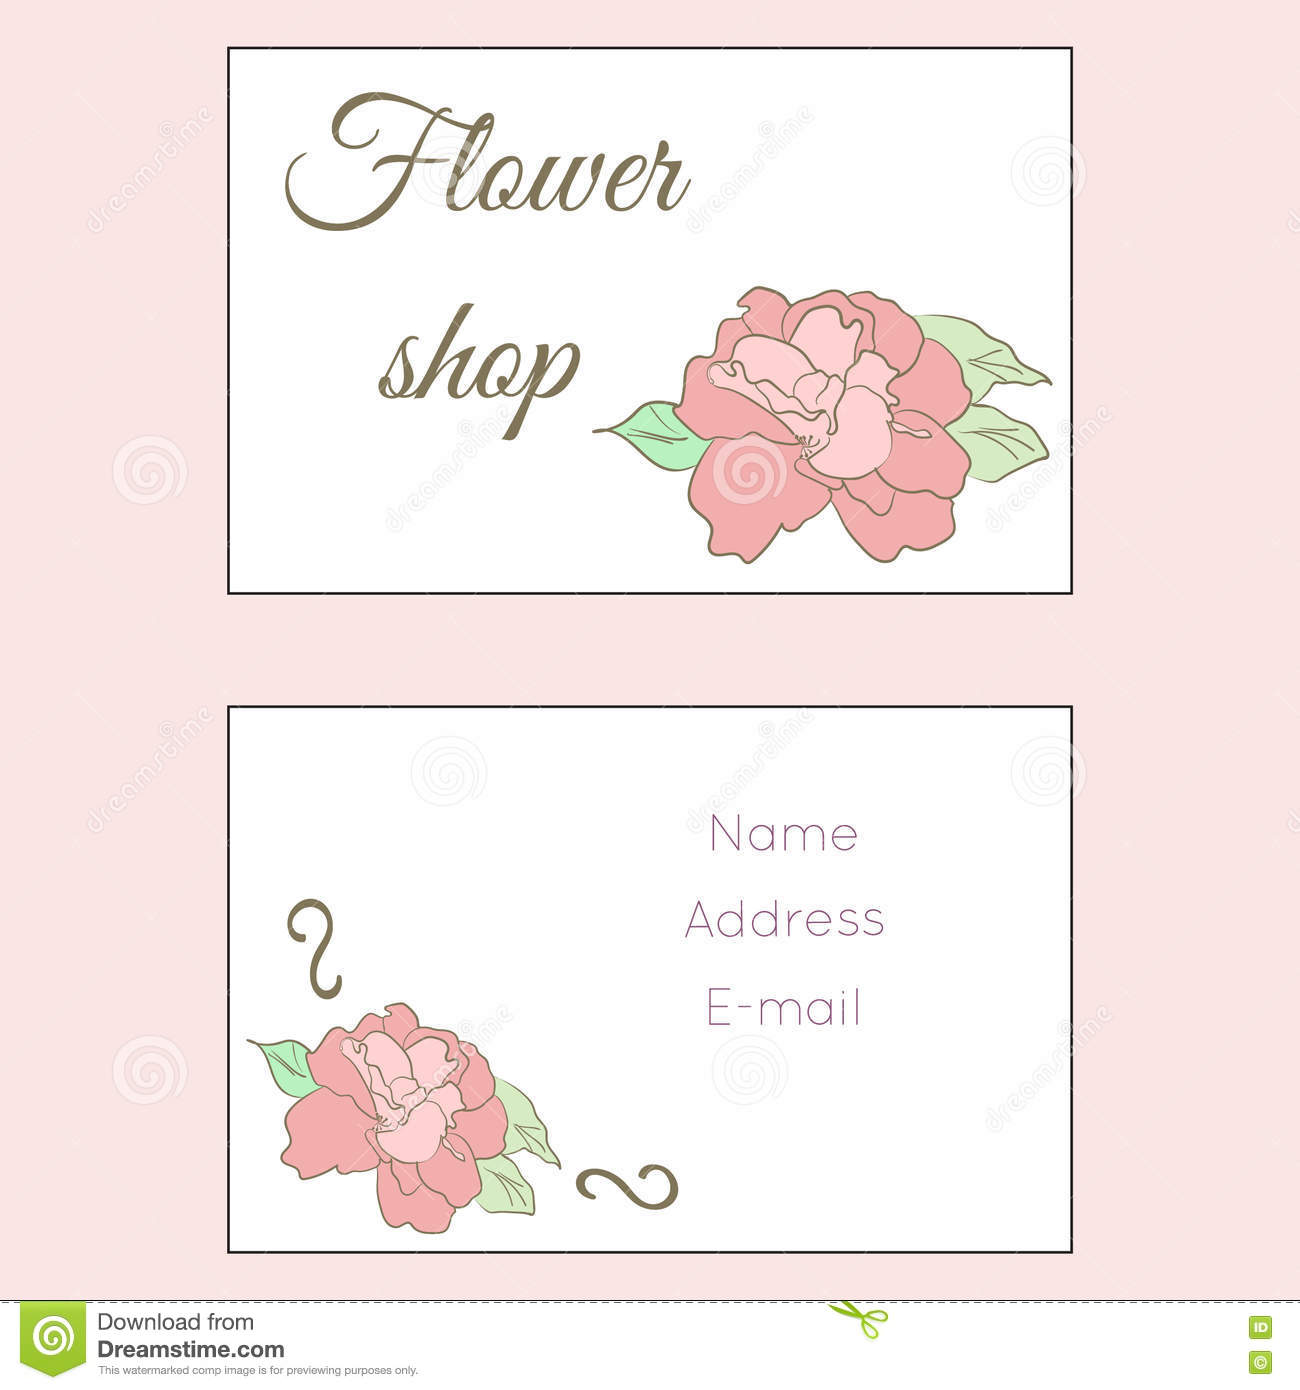 Download Carte De Visite Professionnelle Fleuriste Illustration Vecteur